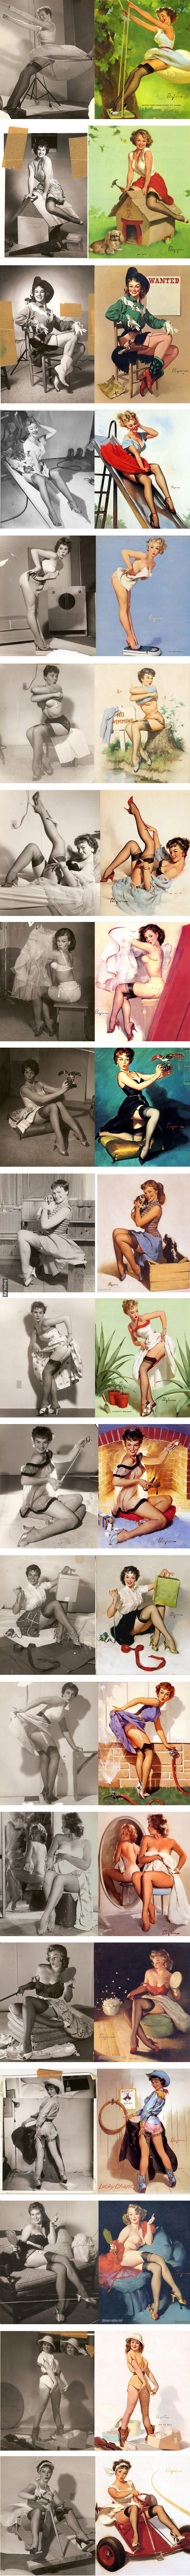 before photoshop there pinup artxpost from rpics